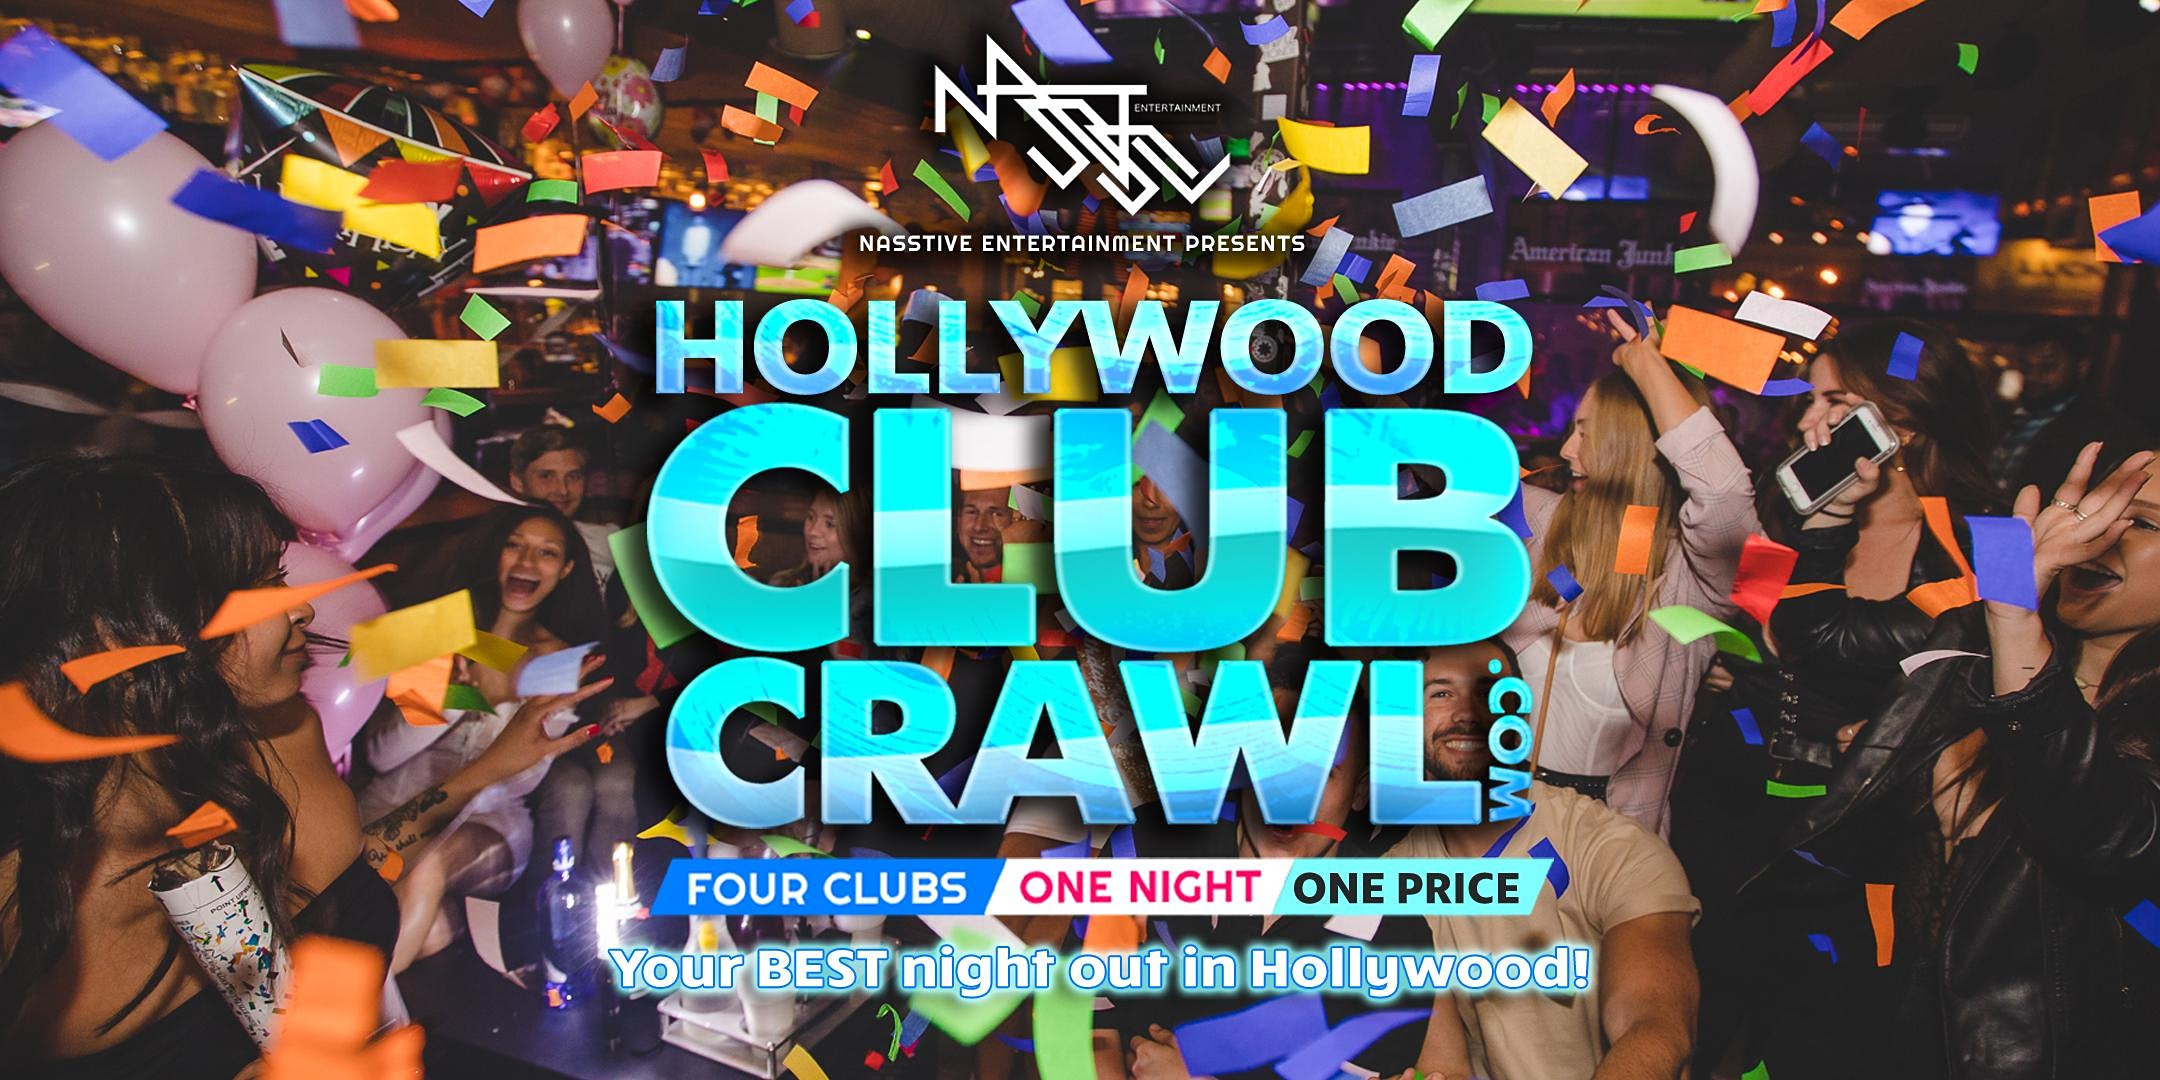 Hollywood Club Crawl - Guided party tour to 4 Hollywood nightclubs and bars